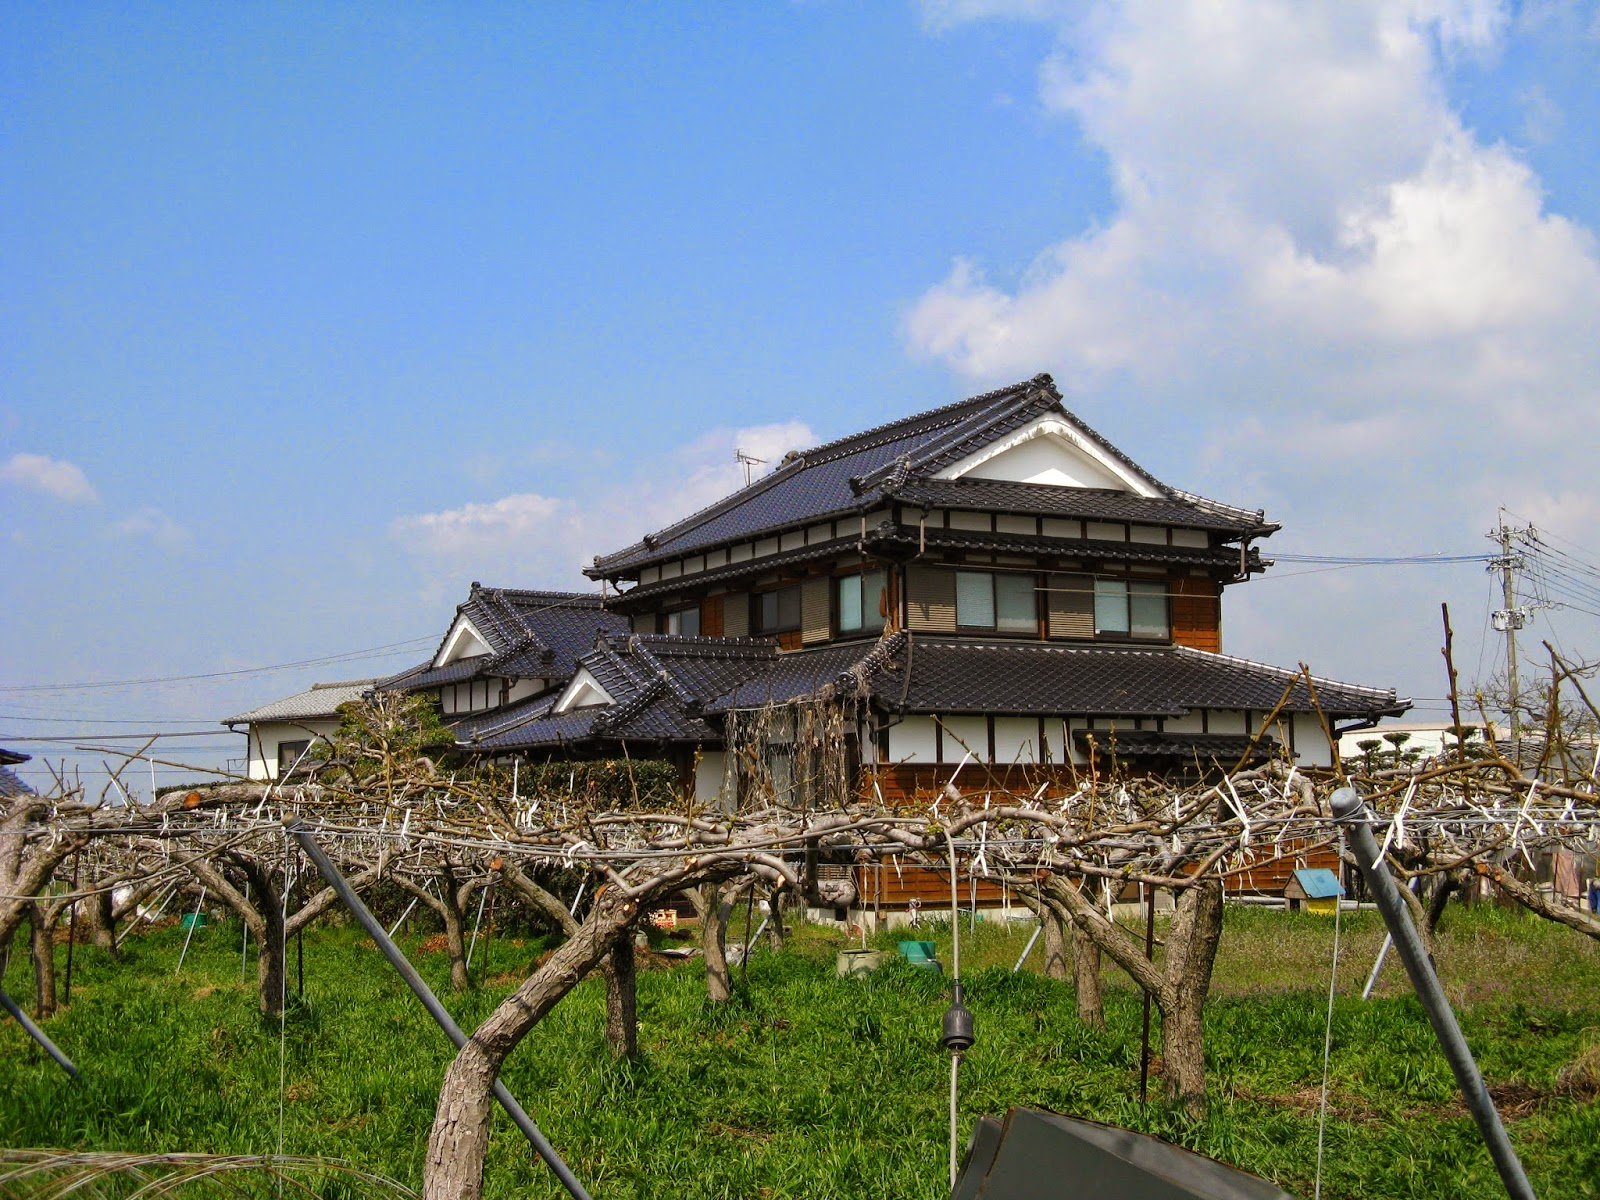 WWOOF Japan the family home